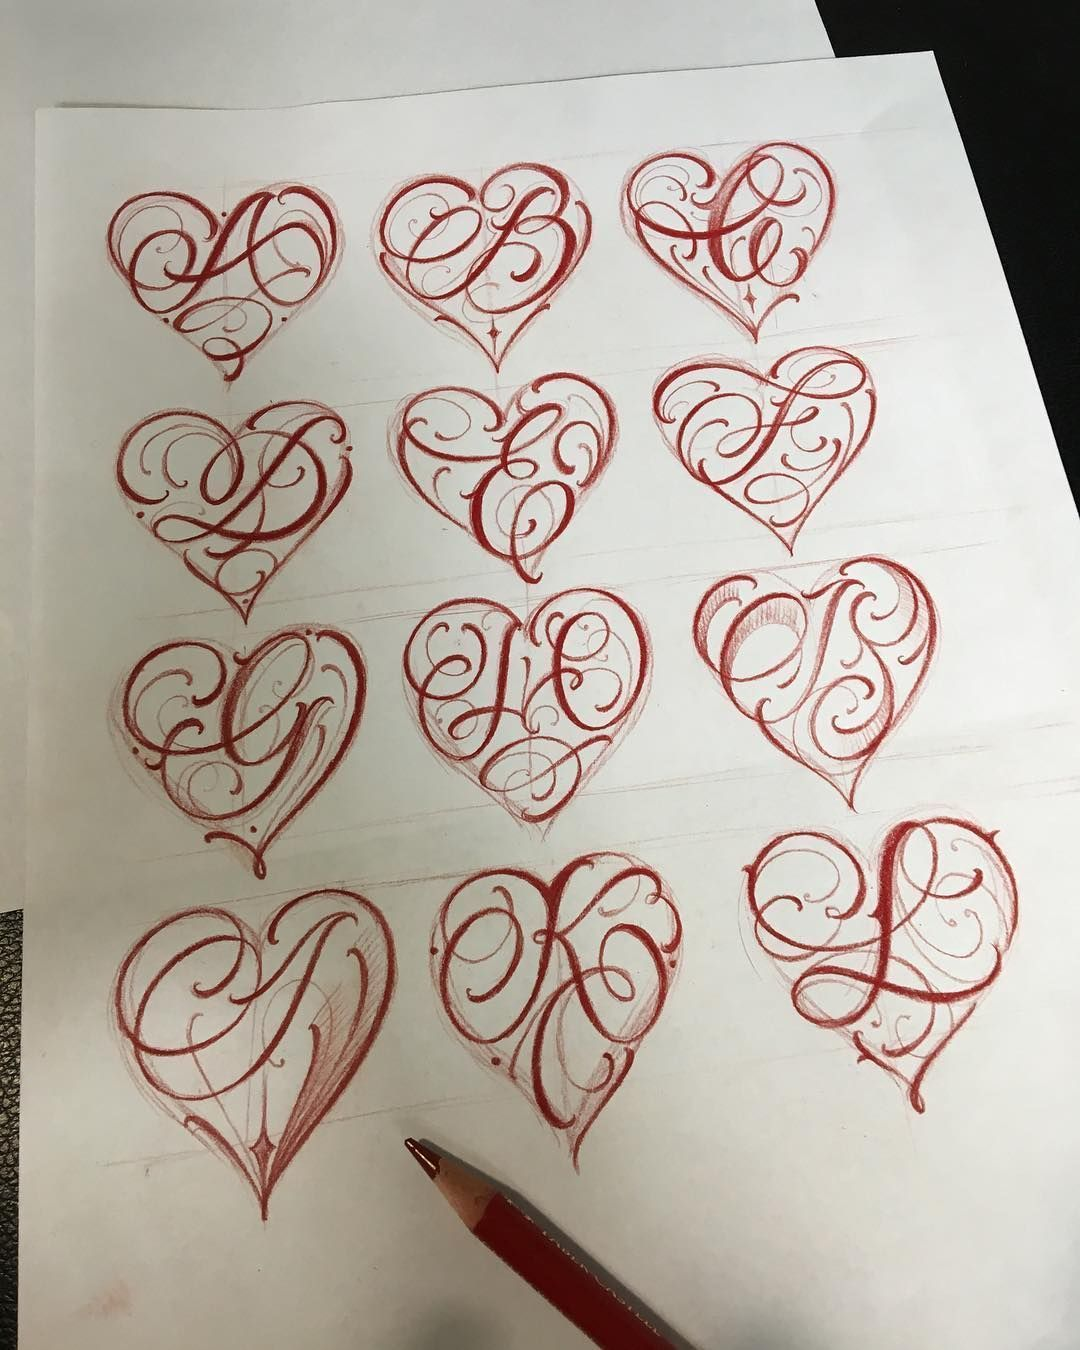 Calligrafia Lettere Tattoo Image Result For Letter A With Heart Tattoo Deco Letras